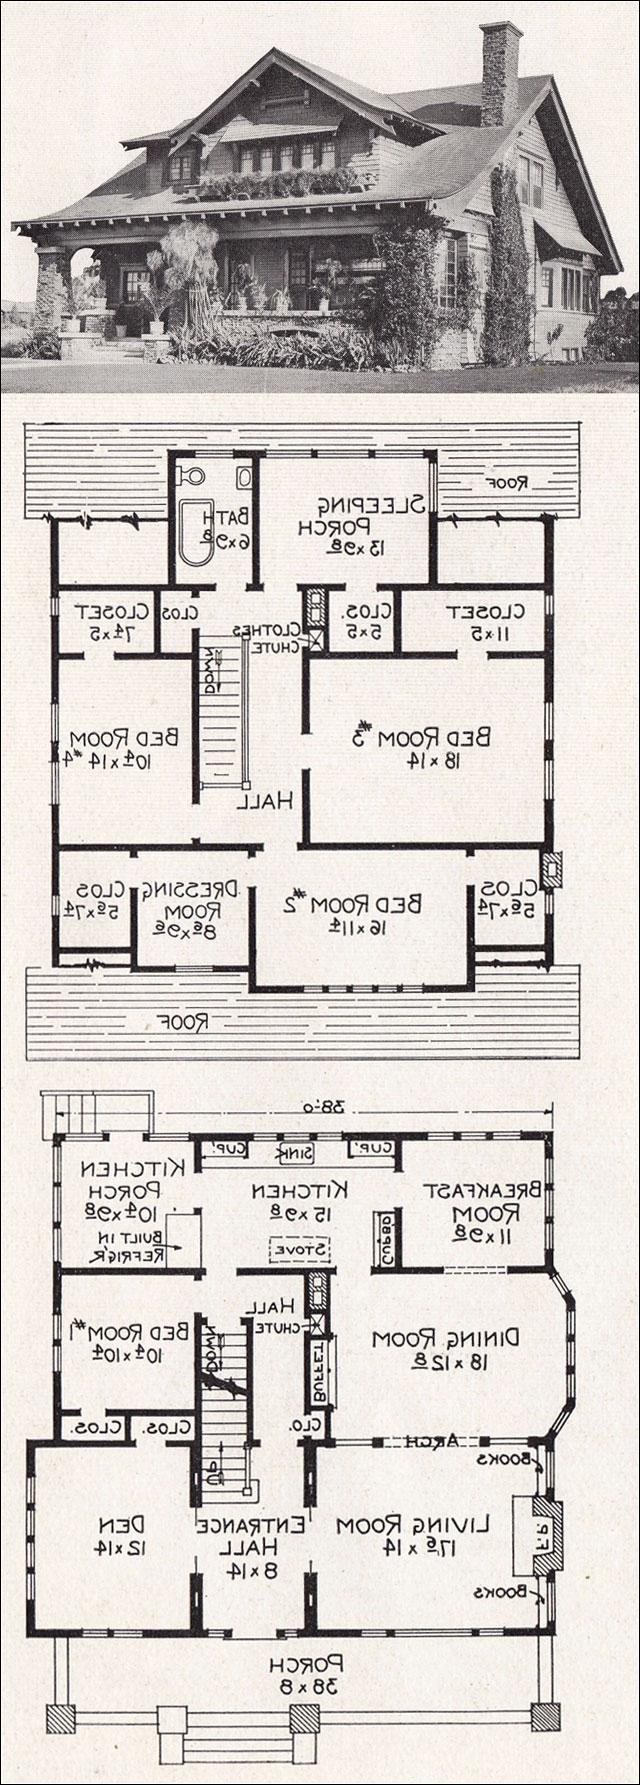 Craftsman bungalow house plans with photos California bungalow floor plans